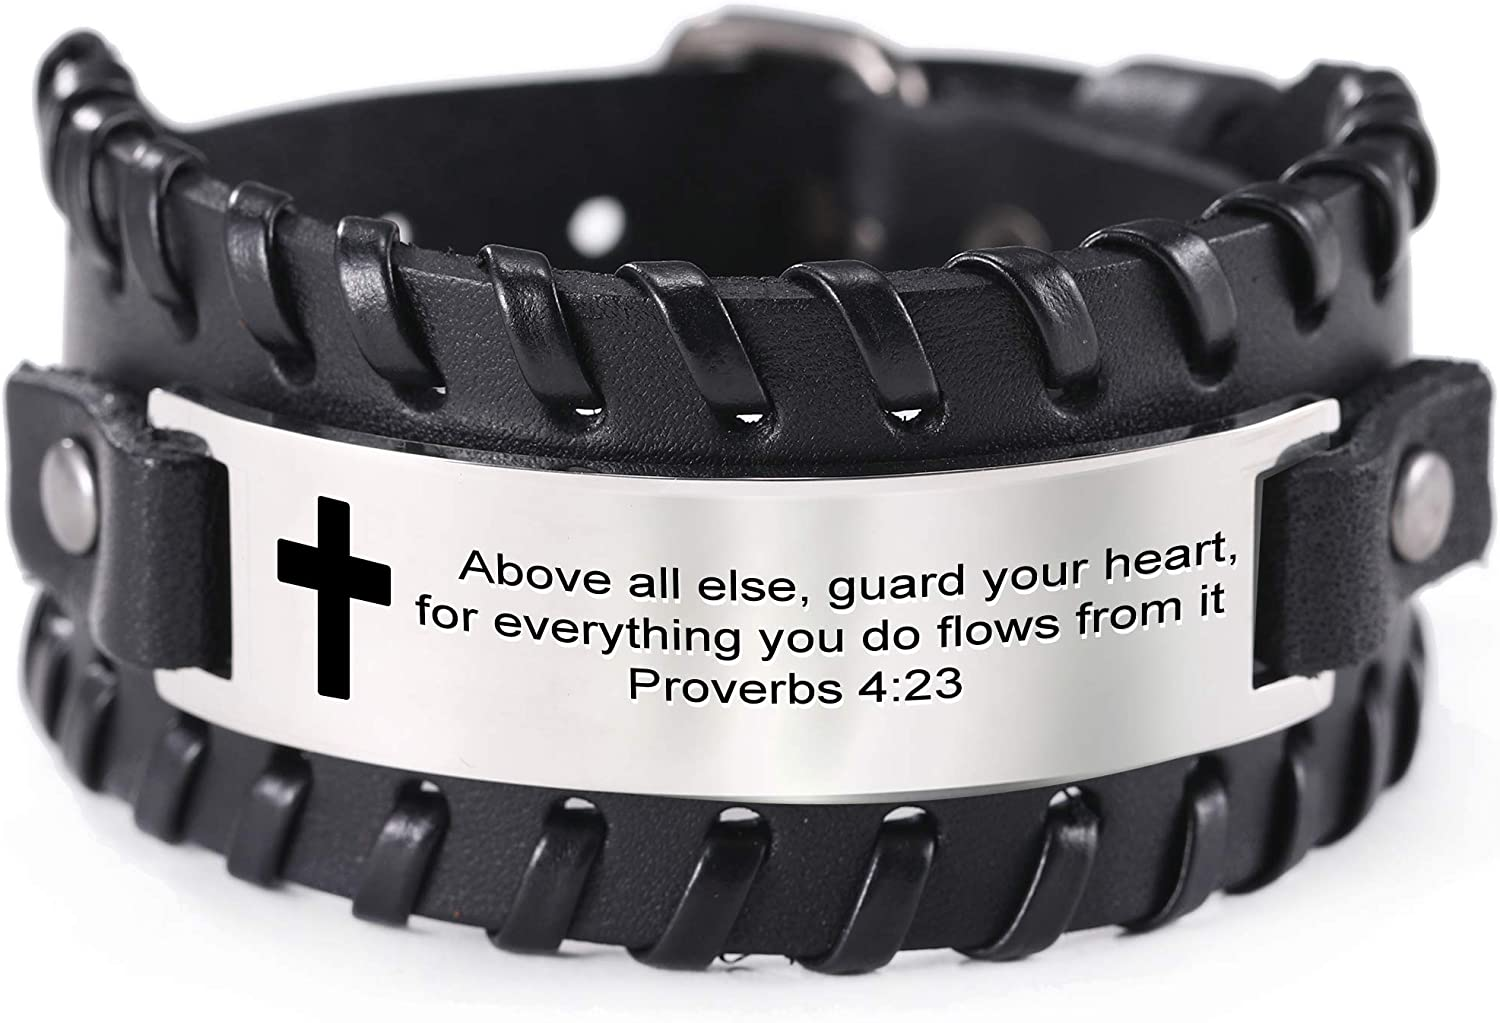 VASSAGO Men's Leather Bracelet with Bible Verse Proverbs 4 23 Christian Scripture Stainless Steel Engraved Cross Pattern Wristband Inspirational Gifts